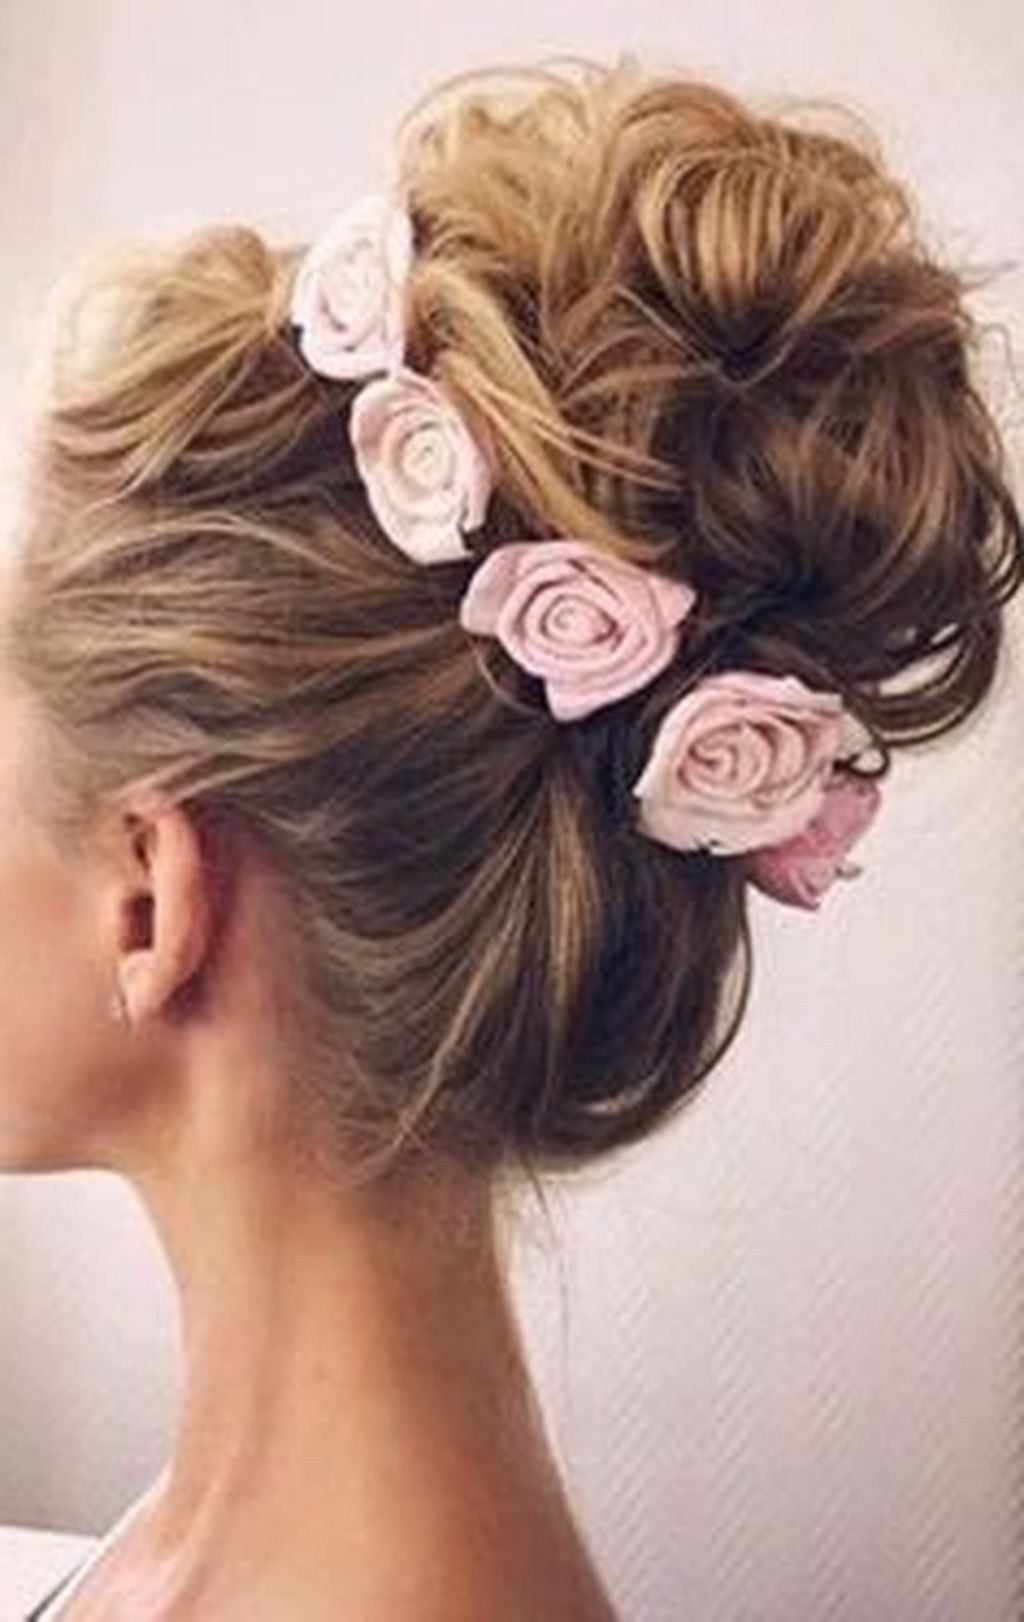 51 Amazing Wedding Hairstyles For Medium Hair Ideas To Makes You Pertaining To 2018 Medium Hairstyles For Brides (Gallery 2 of 20)